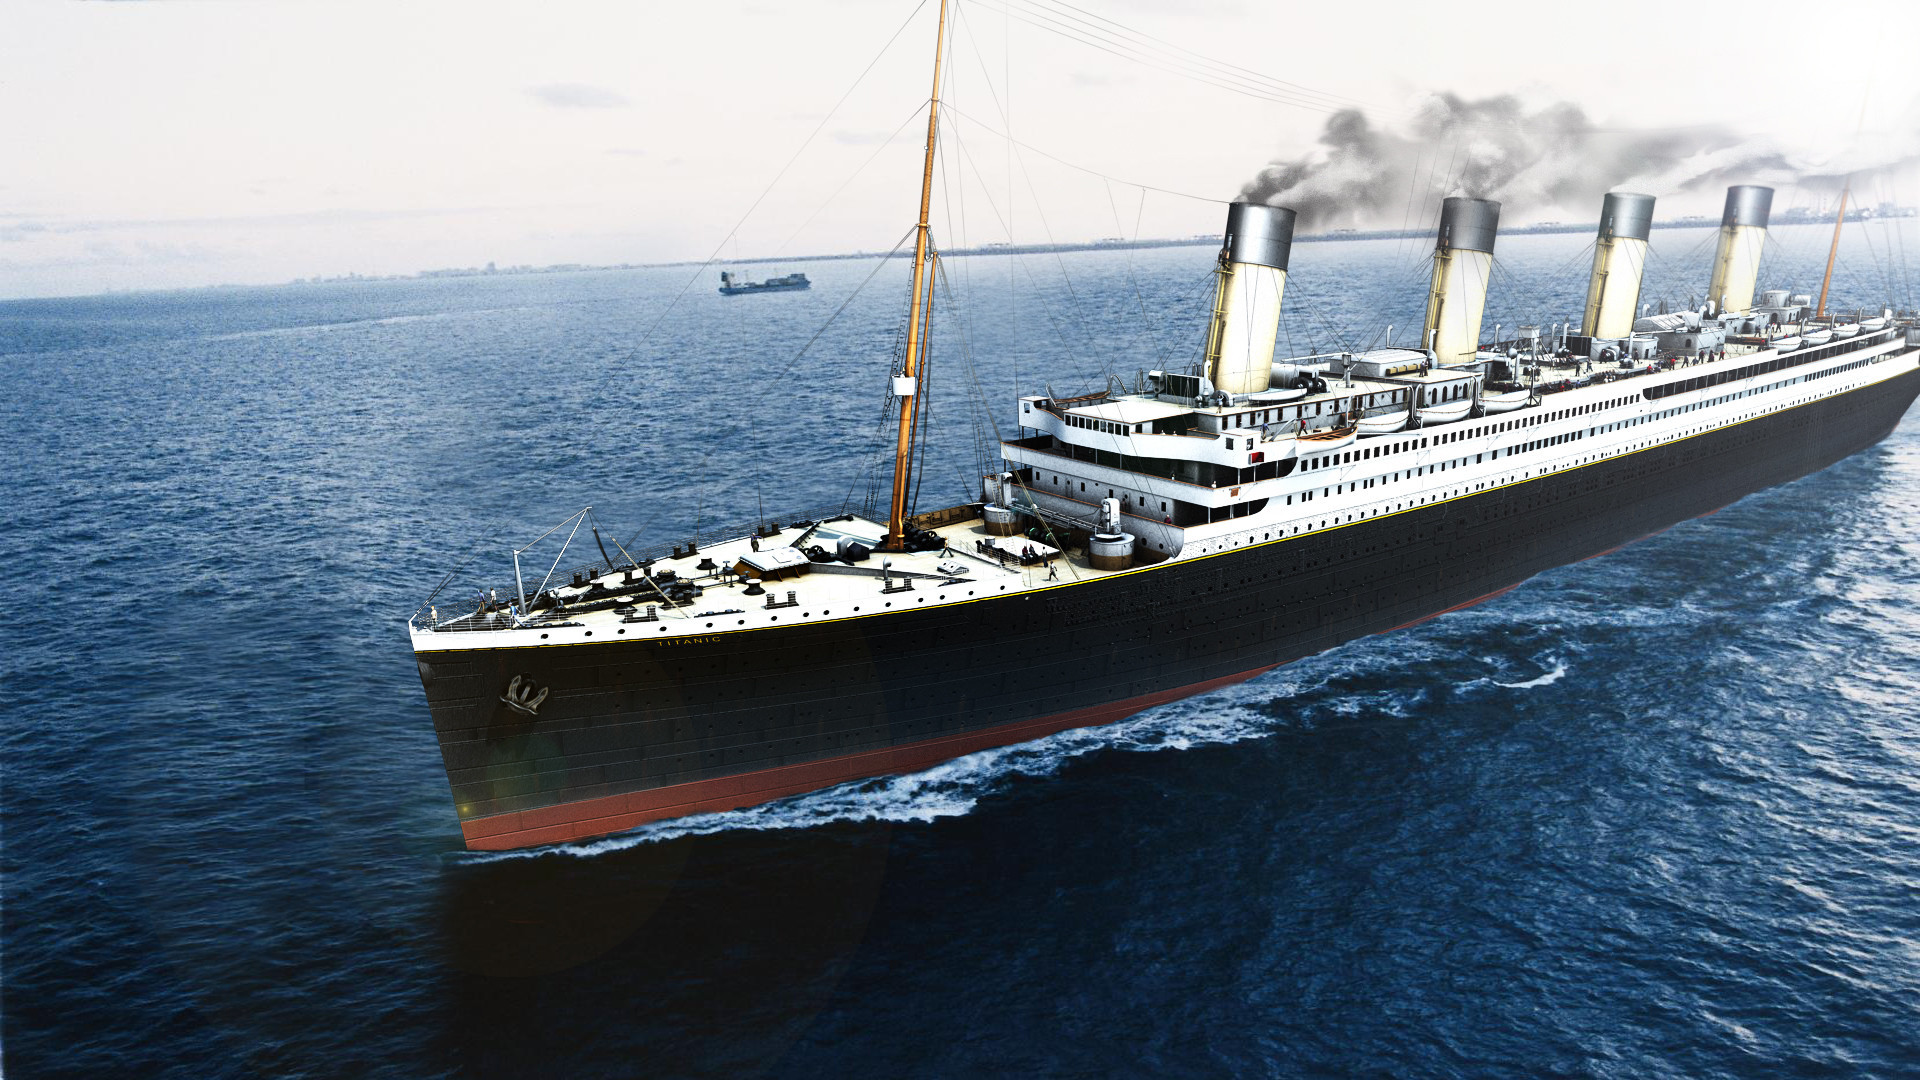 1920x1080  Report RSS Titanic Wallpaper (view original)